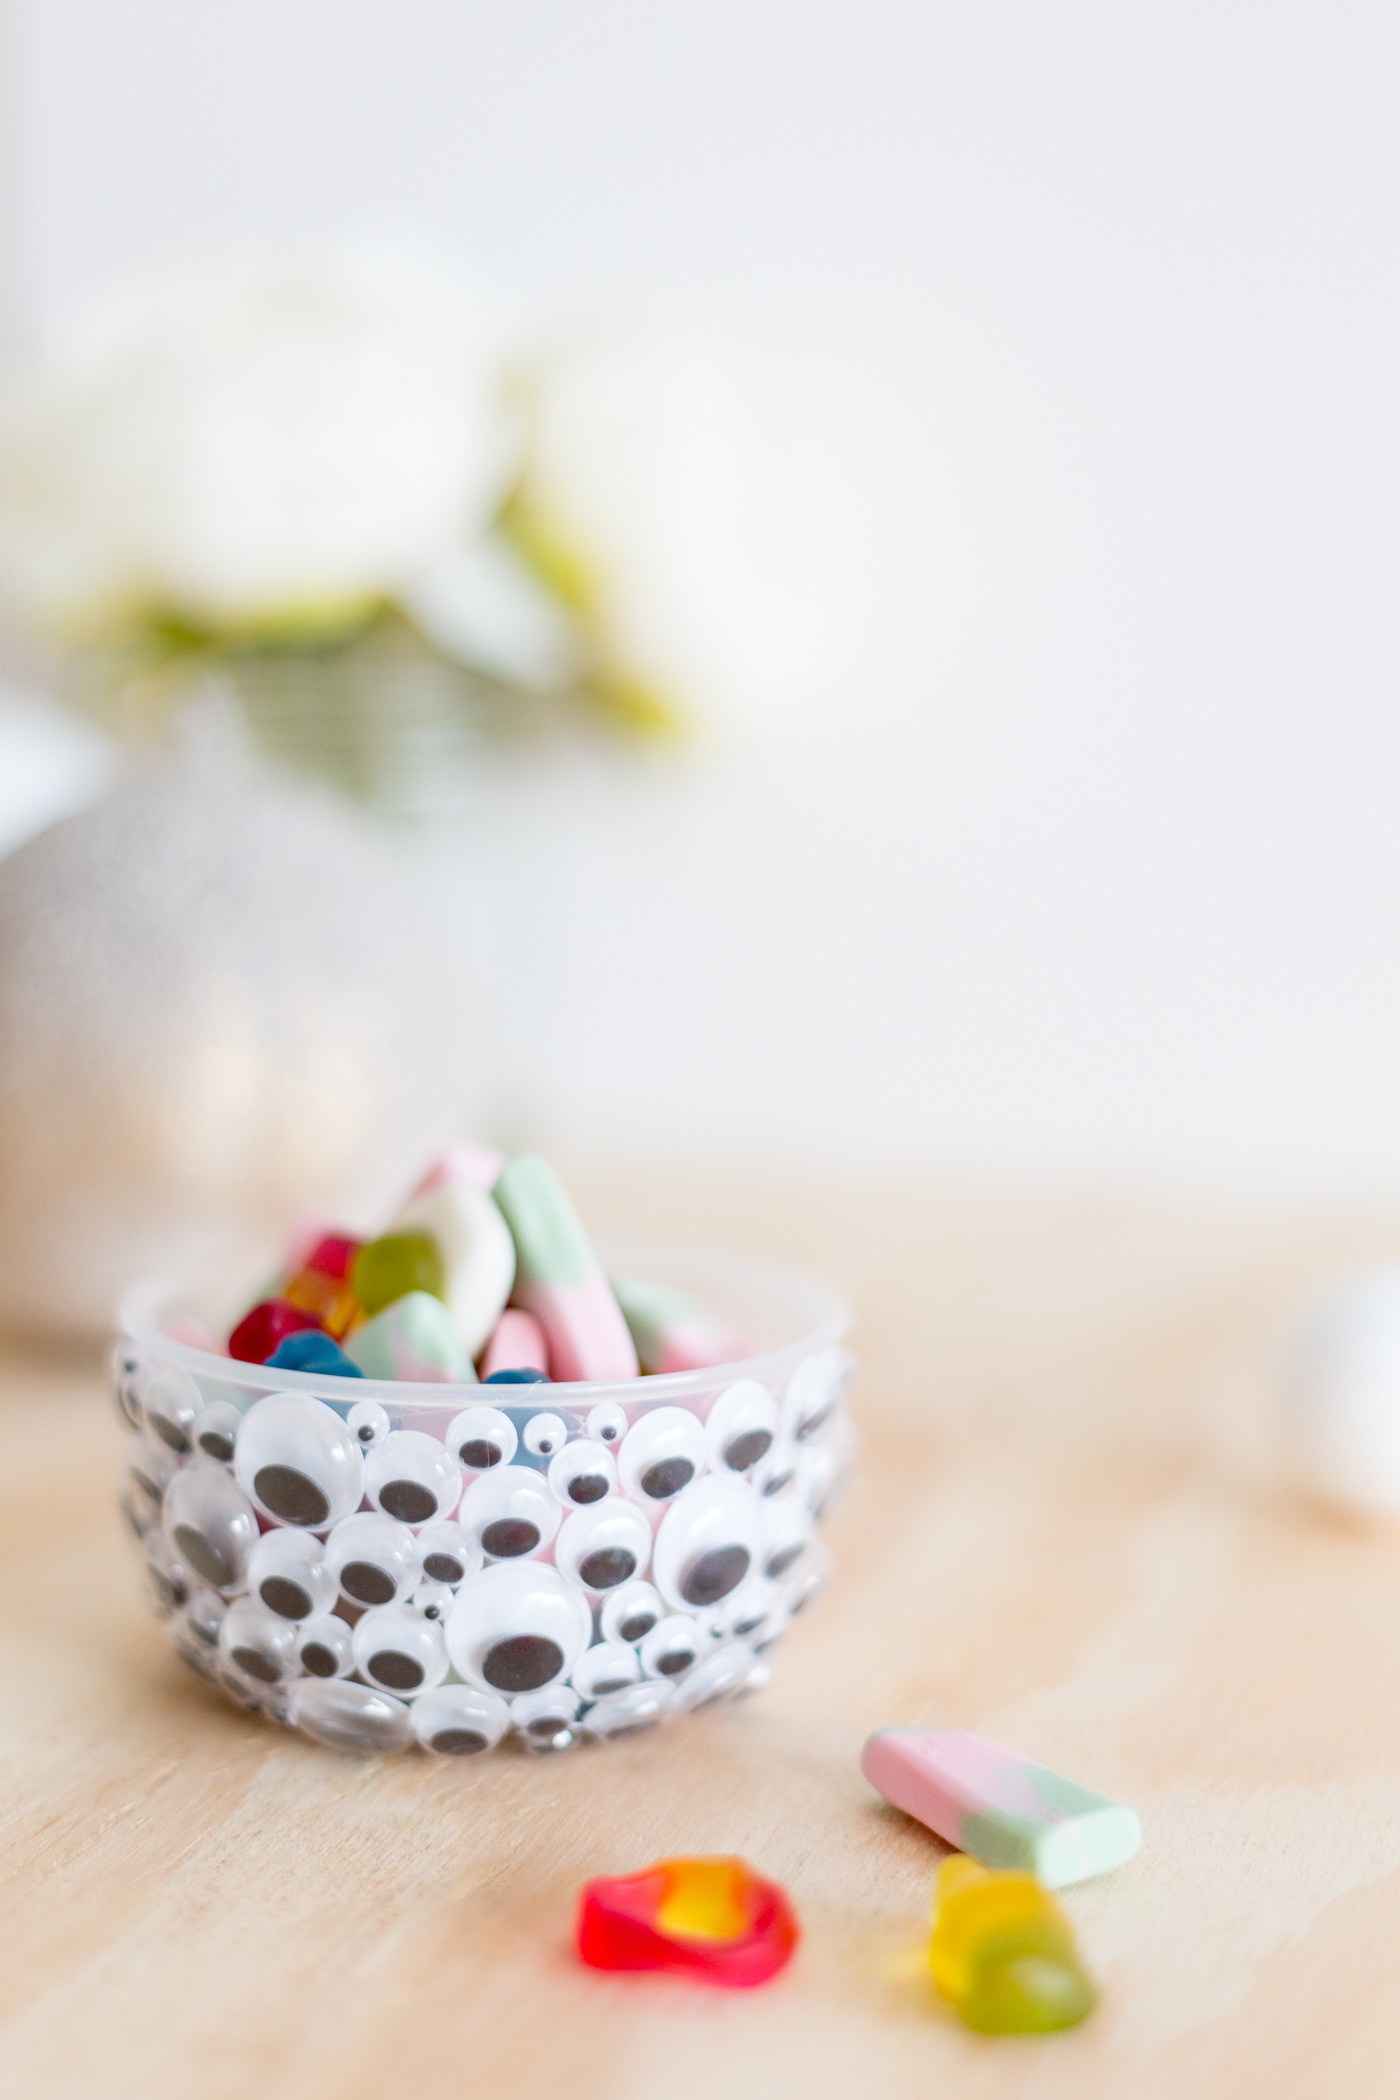 DIY Halloween Googly Eye Bowls | @fallfordiy